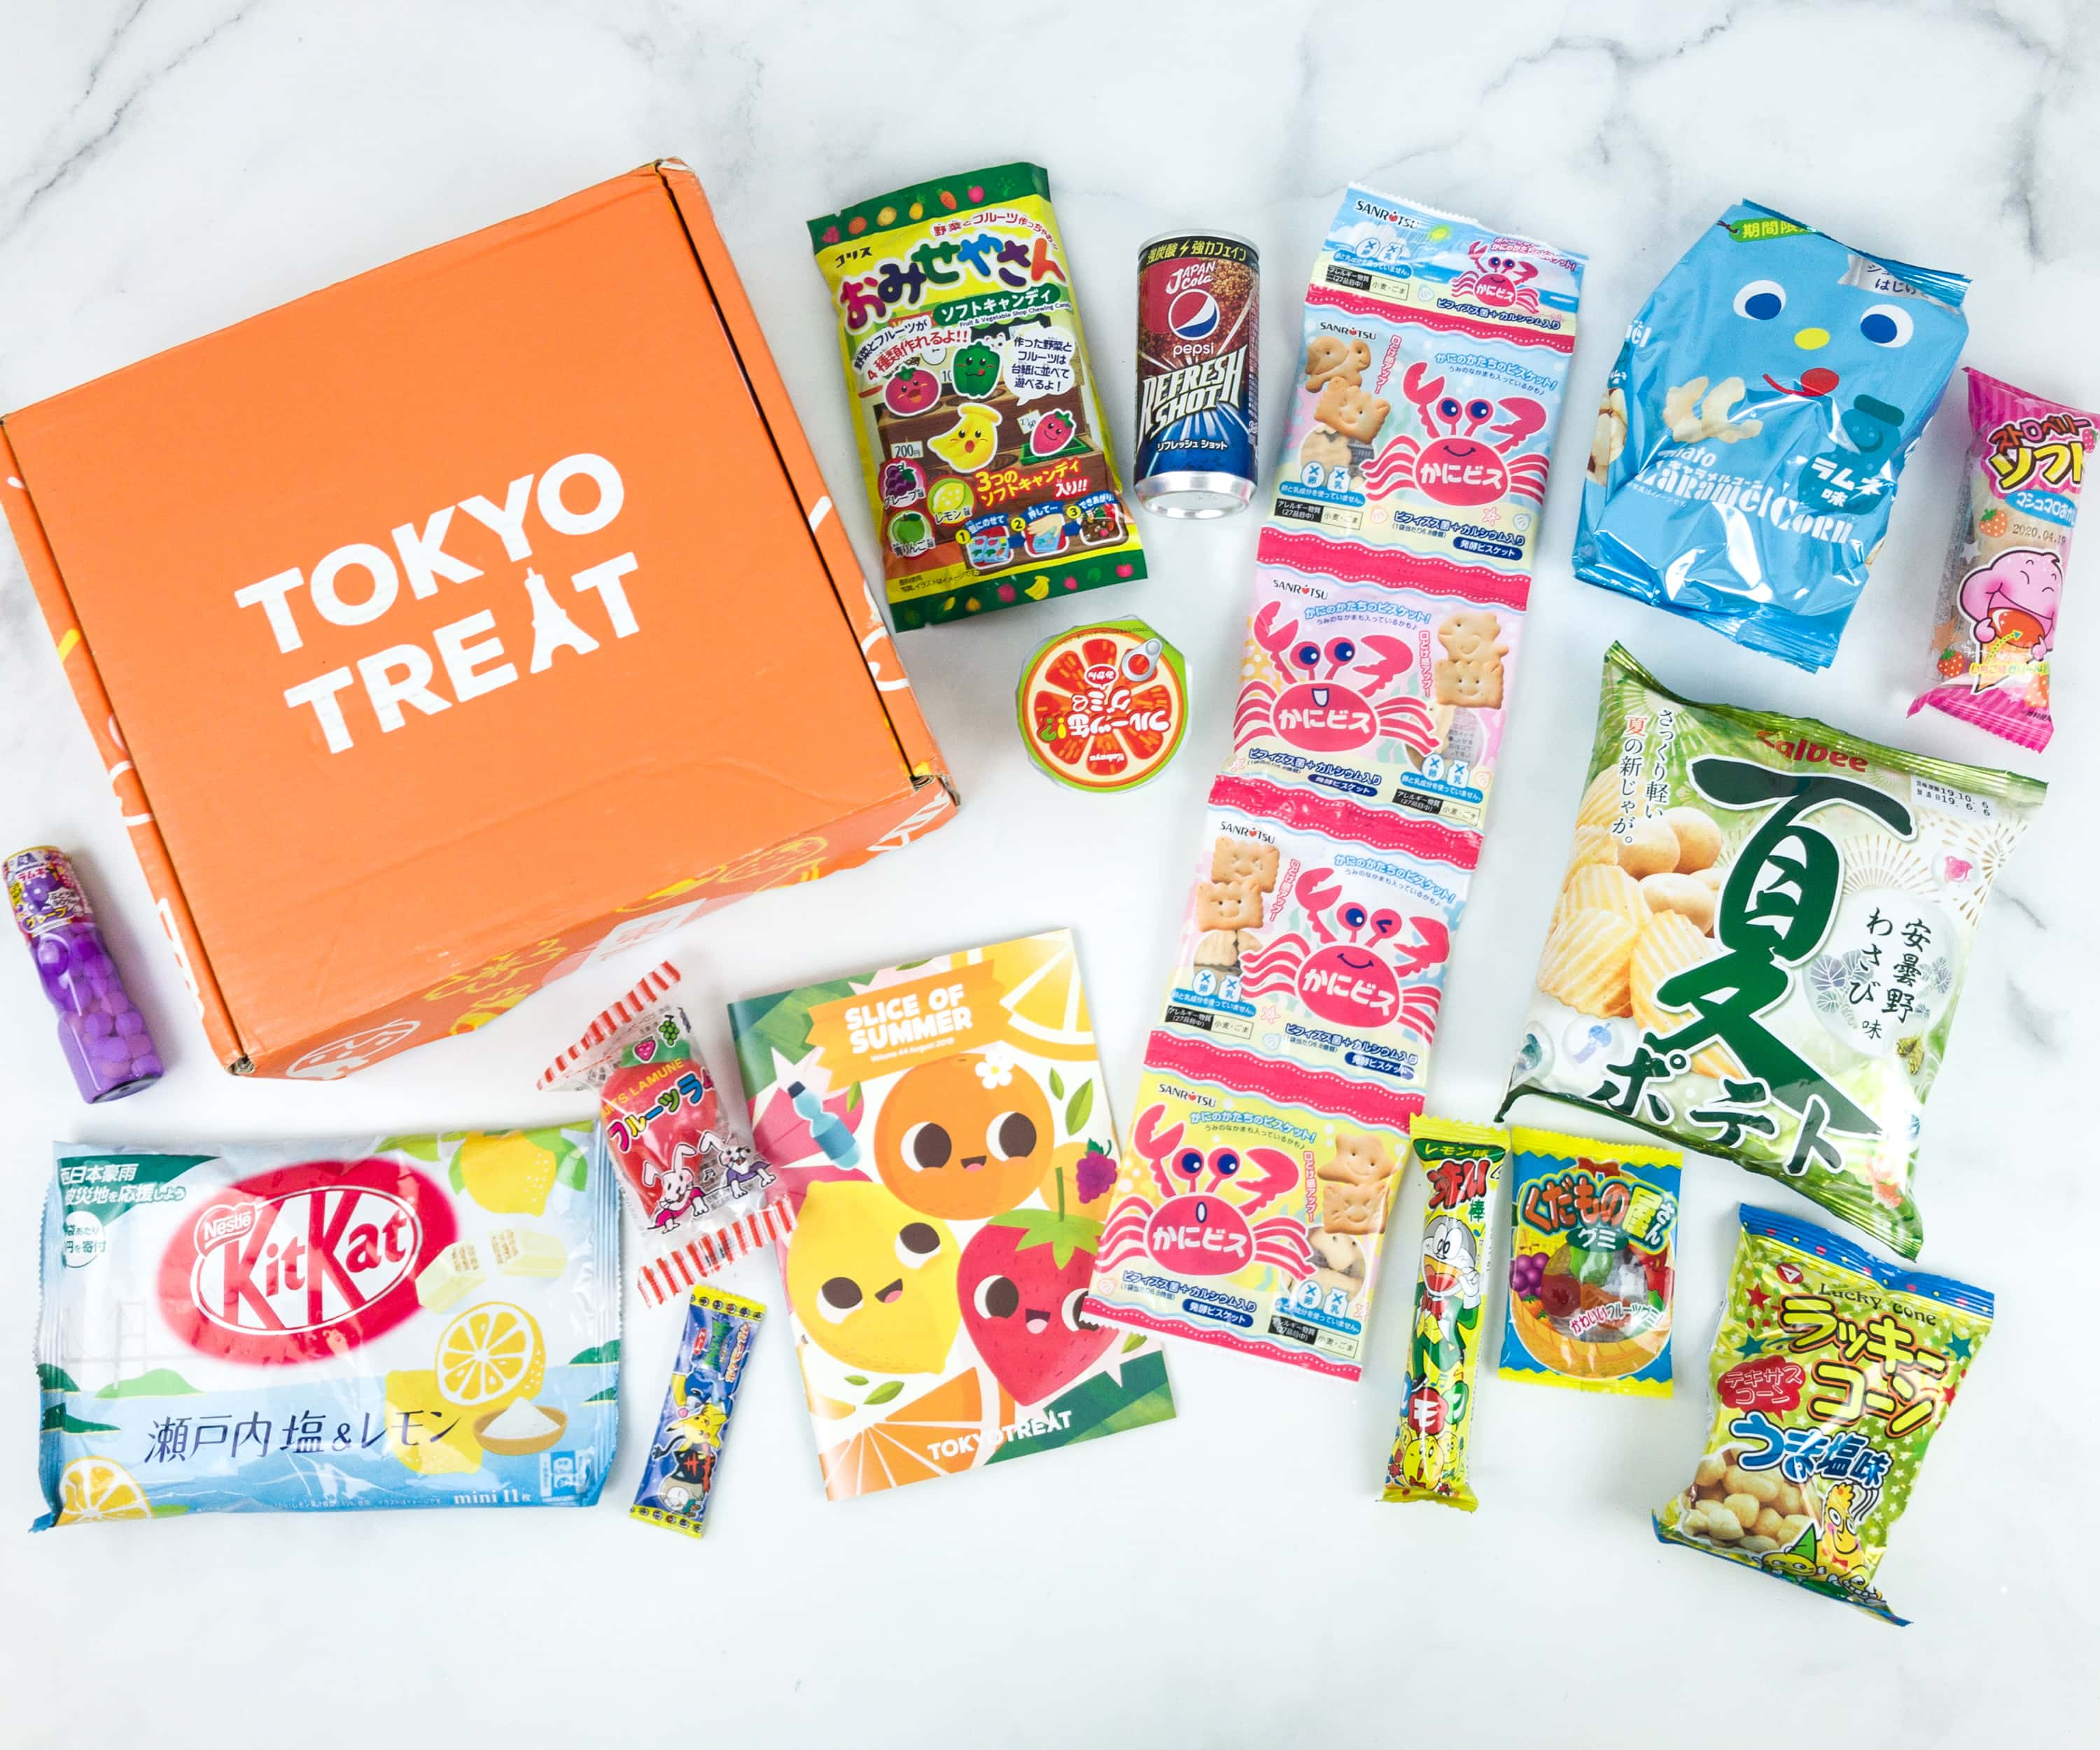 Tokyo Treat August 2019 Subscription Box Review + Coupon